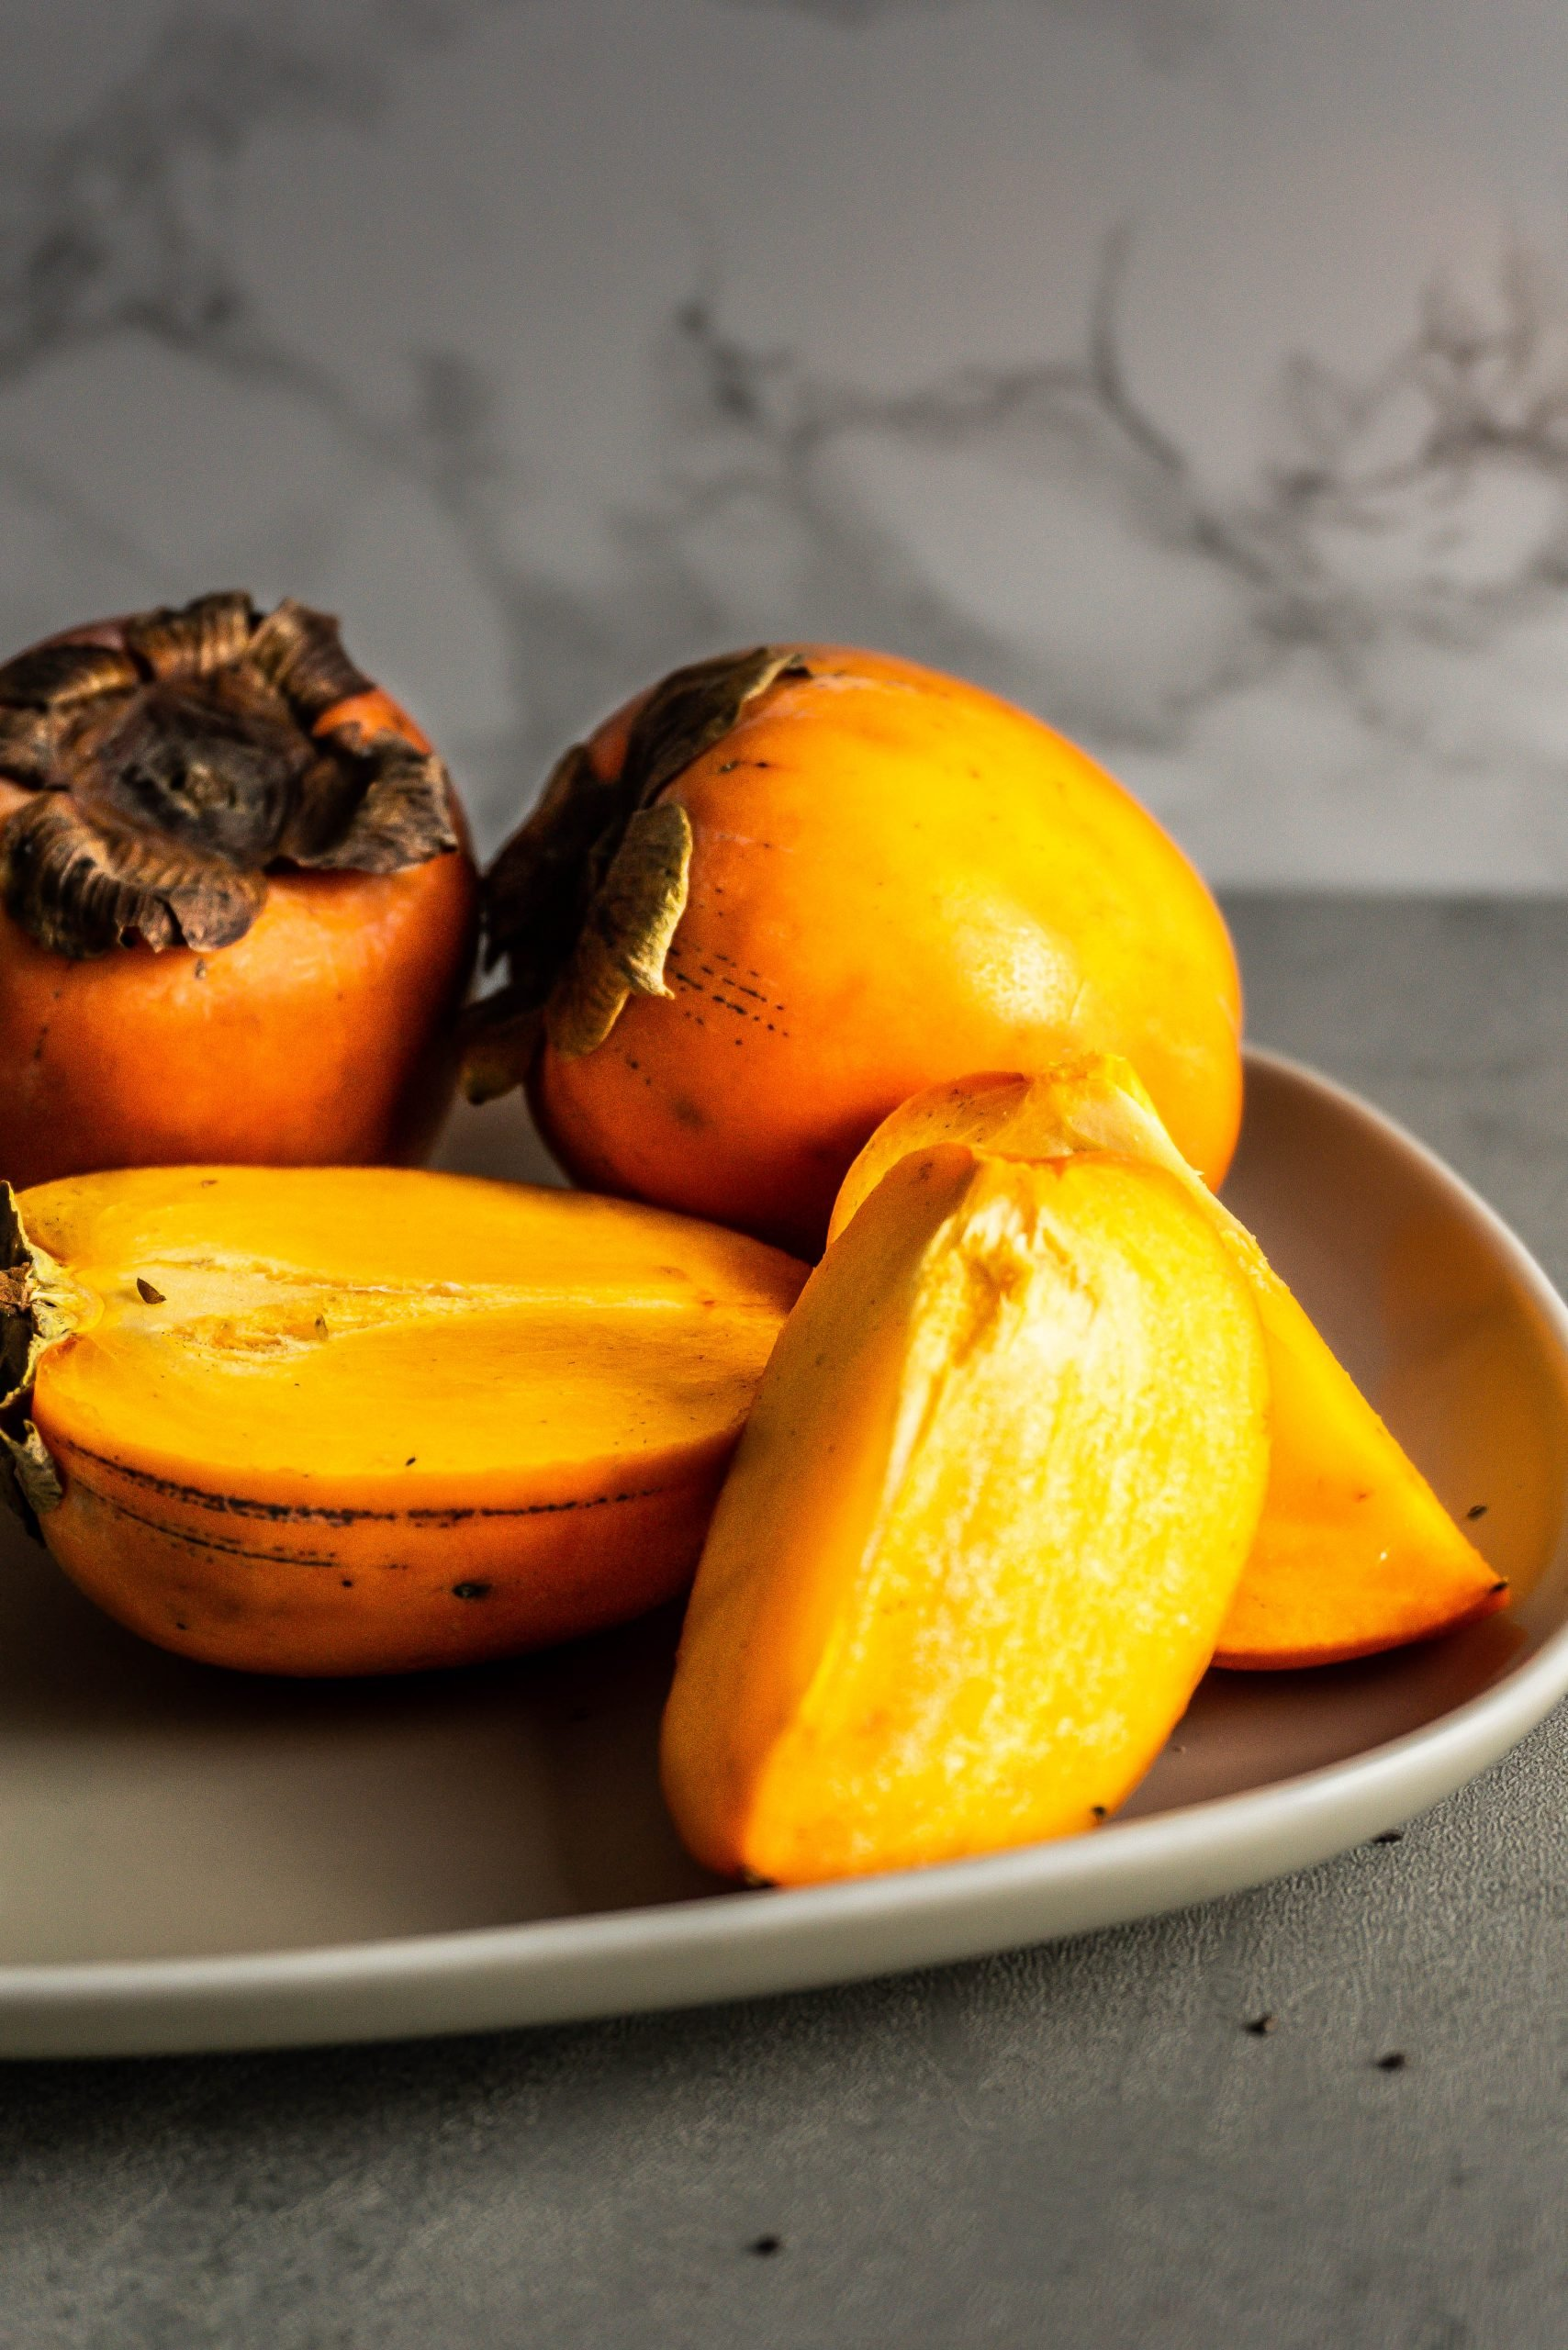 Persimmons whole and cut up on a plate